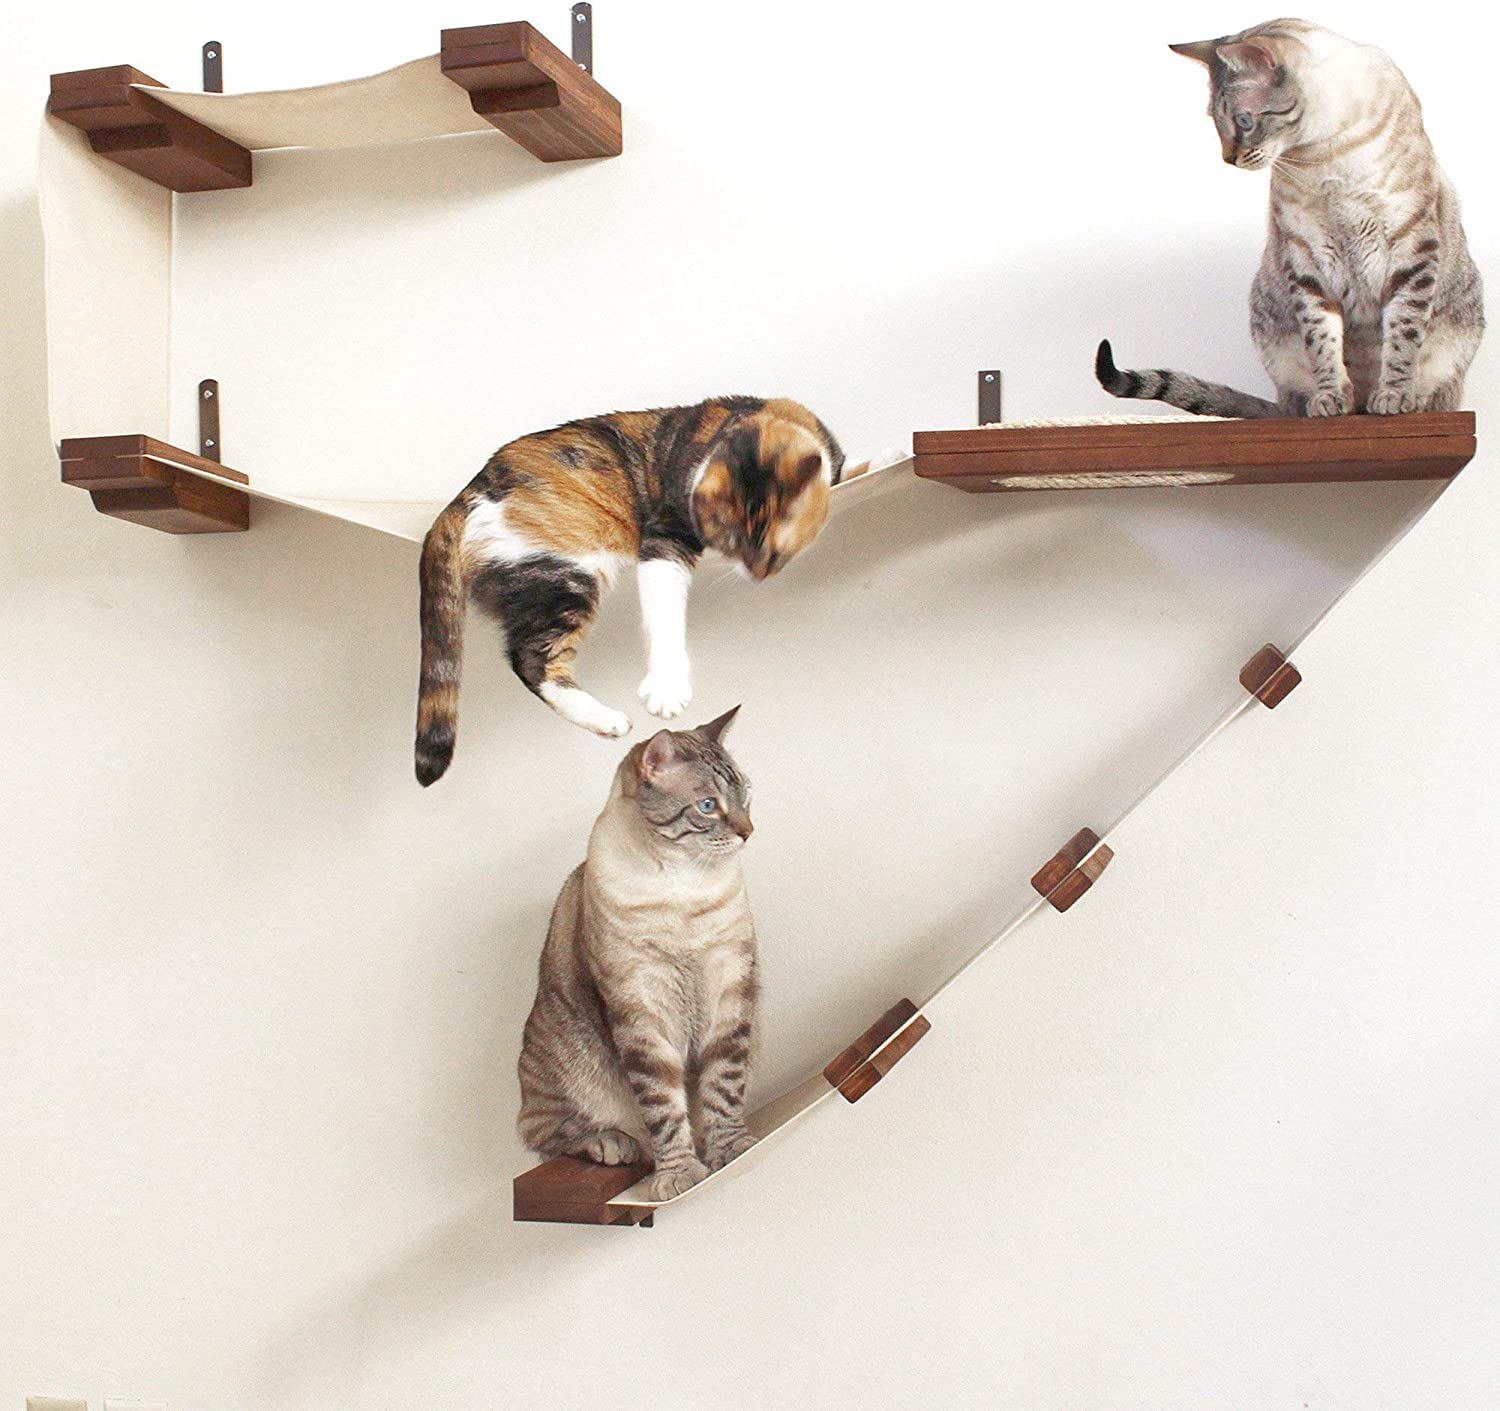 CatastrophiCreations Deluxe Cat Playplace  Cat Hammock & Climbing Activity Center  Handcrafted wallmounted cat tree